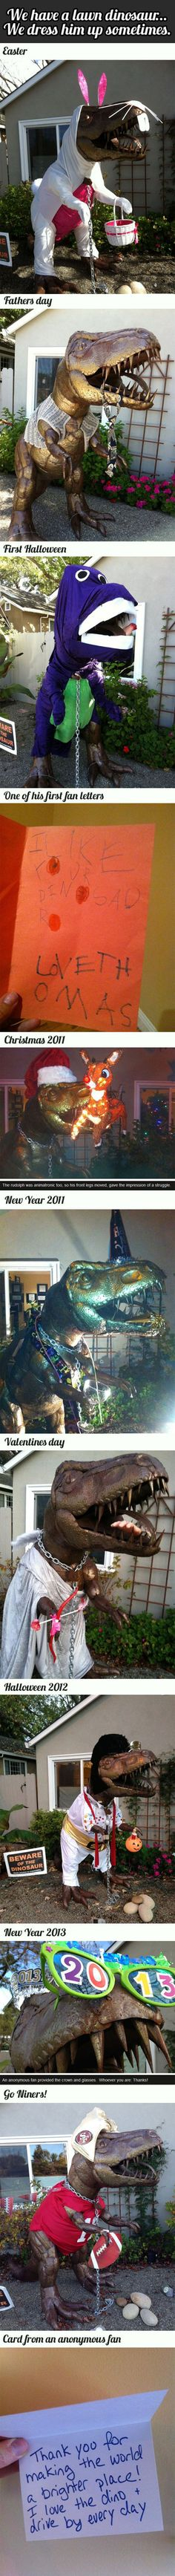 I have neighbors with 2 lawn dinos! They get dressed up at Christmas.